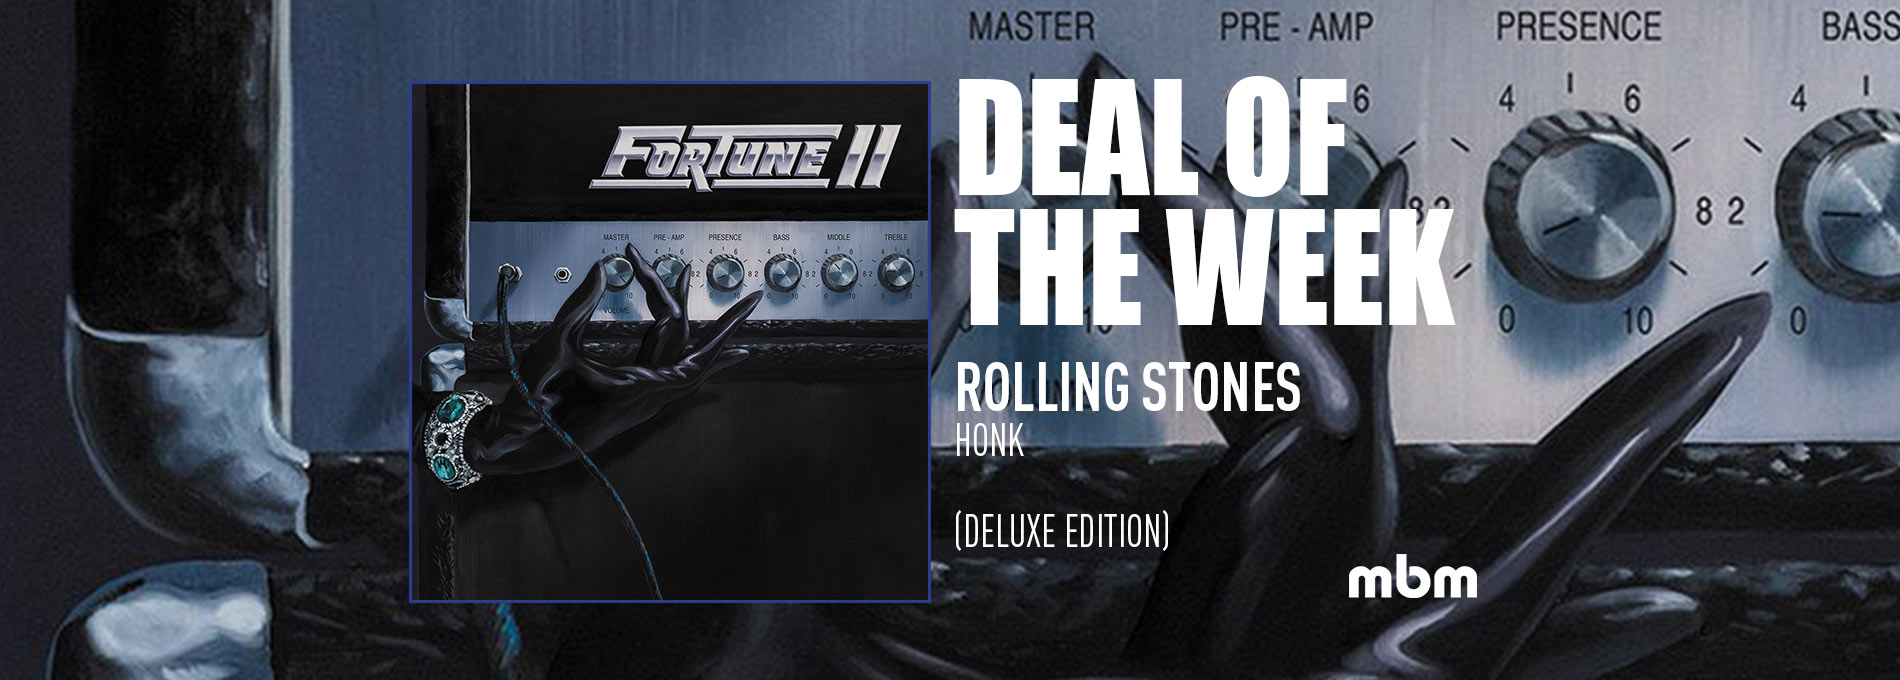 Deal Of The Week: FORTUNE - II